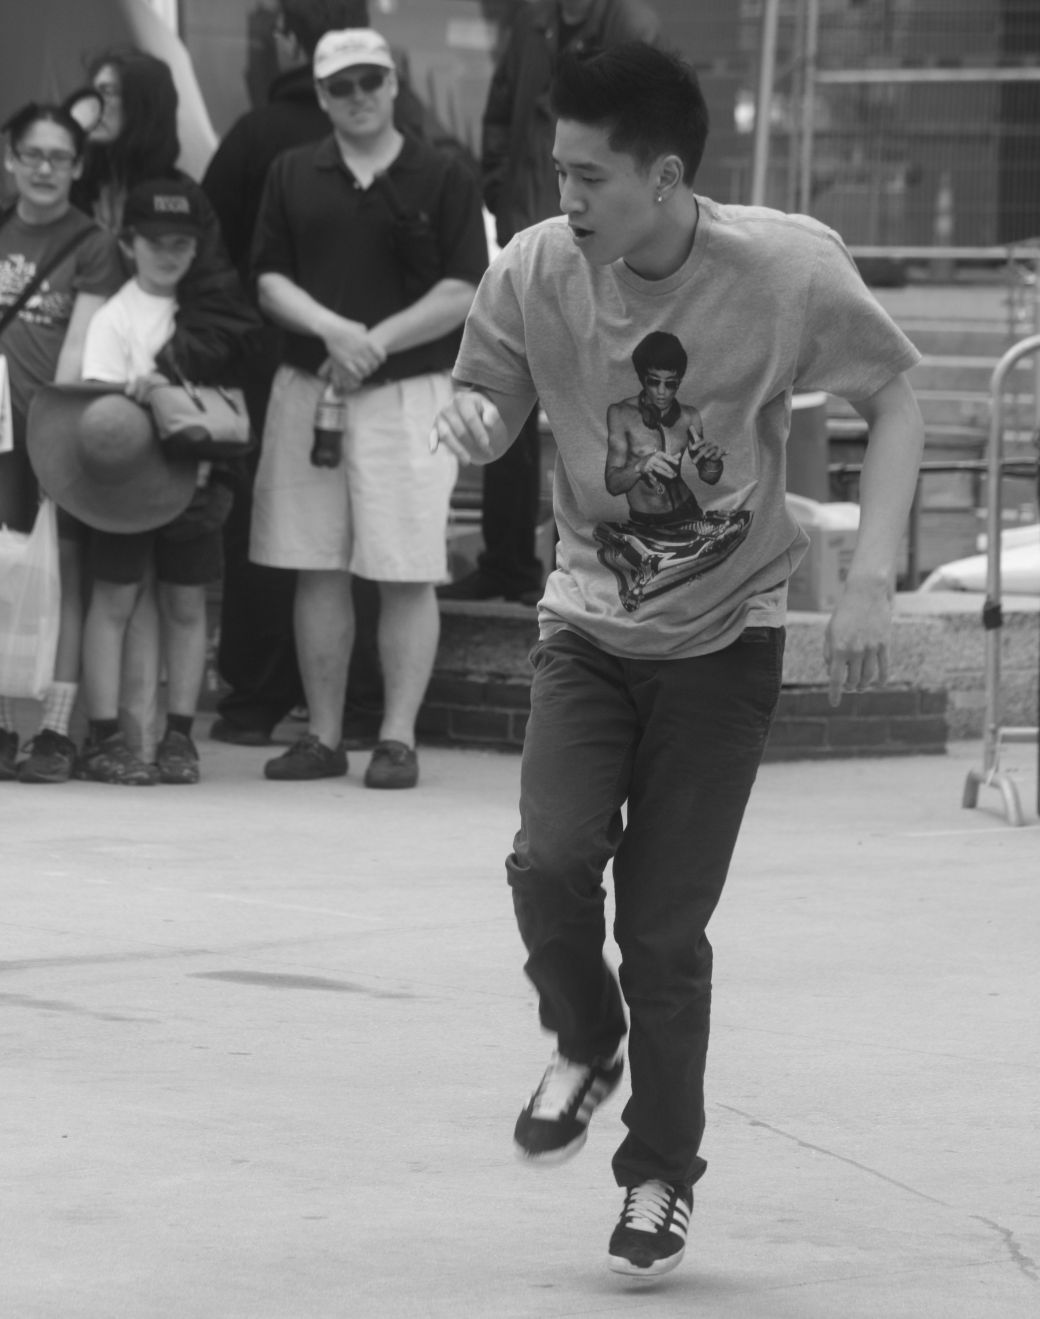 boston government center japanese festival may 19 2013 man breakdancing 2